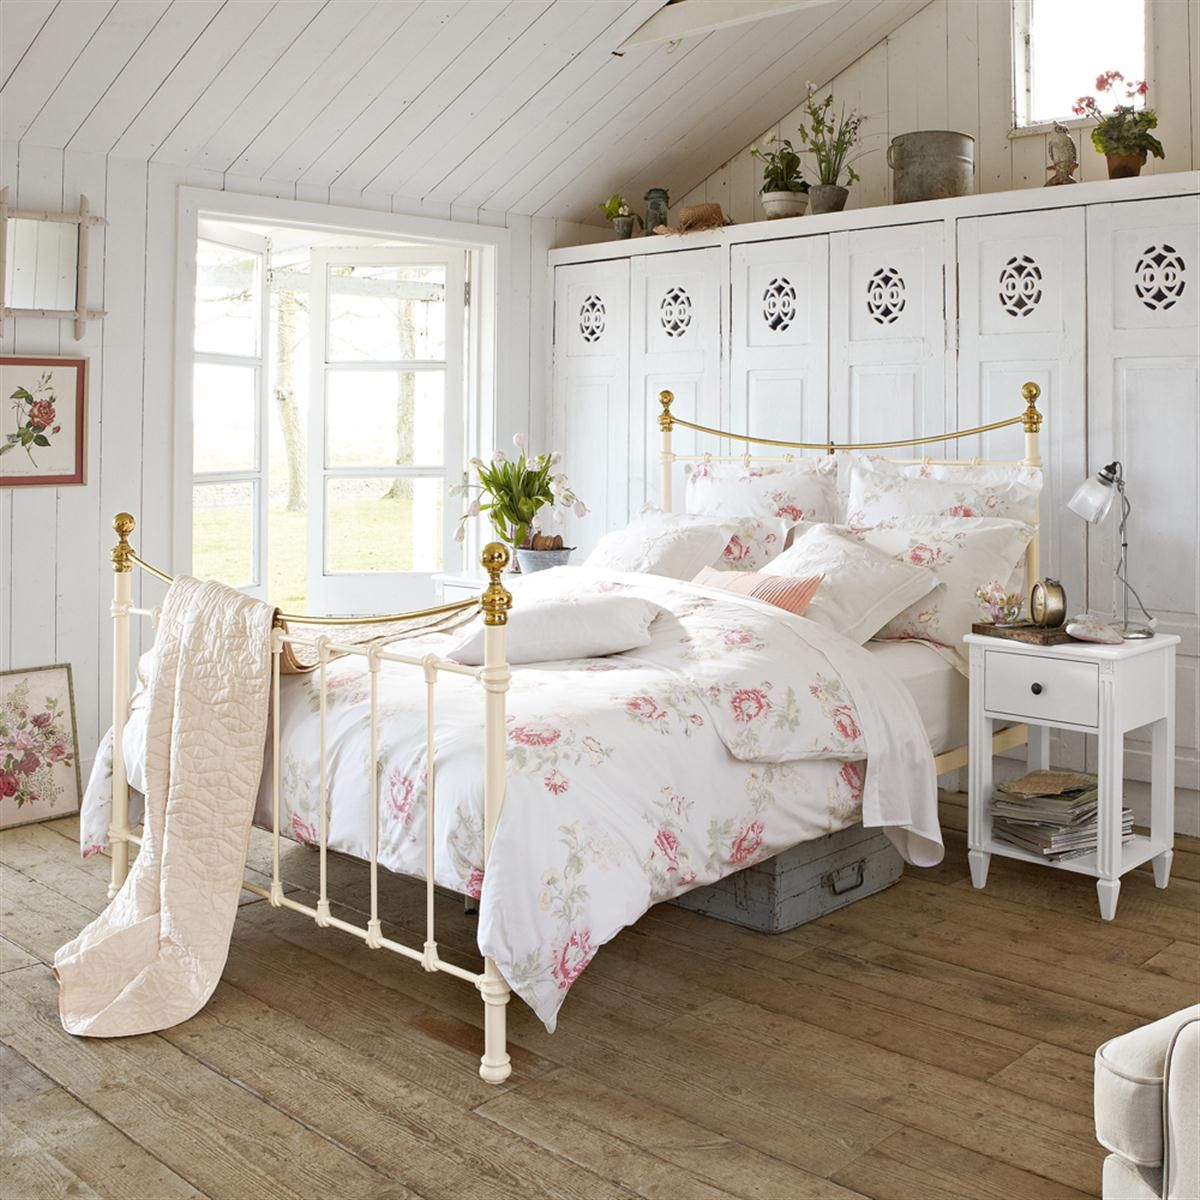 Bedroom Cozy White Flower Bed On The White Iron Bed Frame Near The Window Combined With Wooden Floor And White Partition Dormitorios Decoracion De Unas Camas